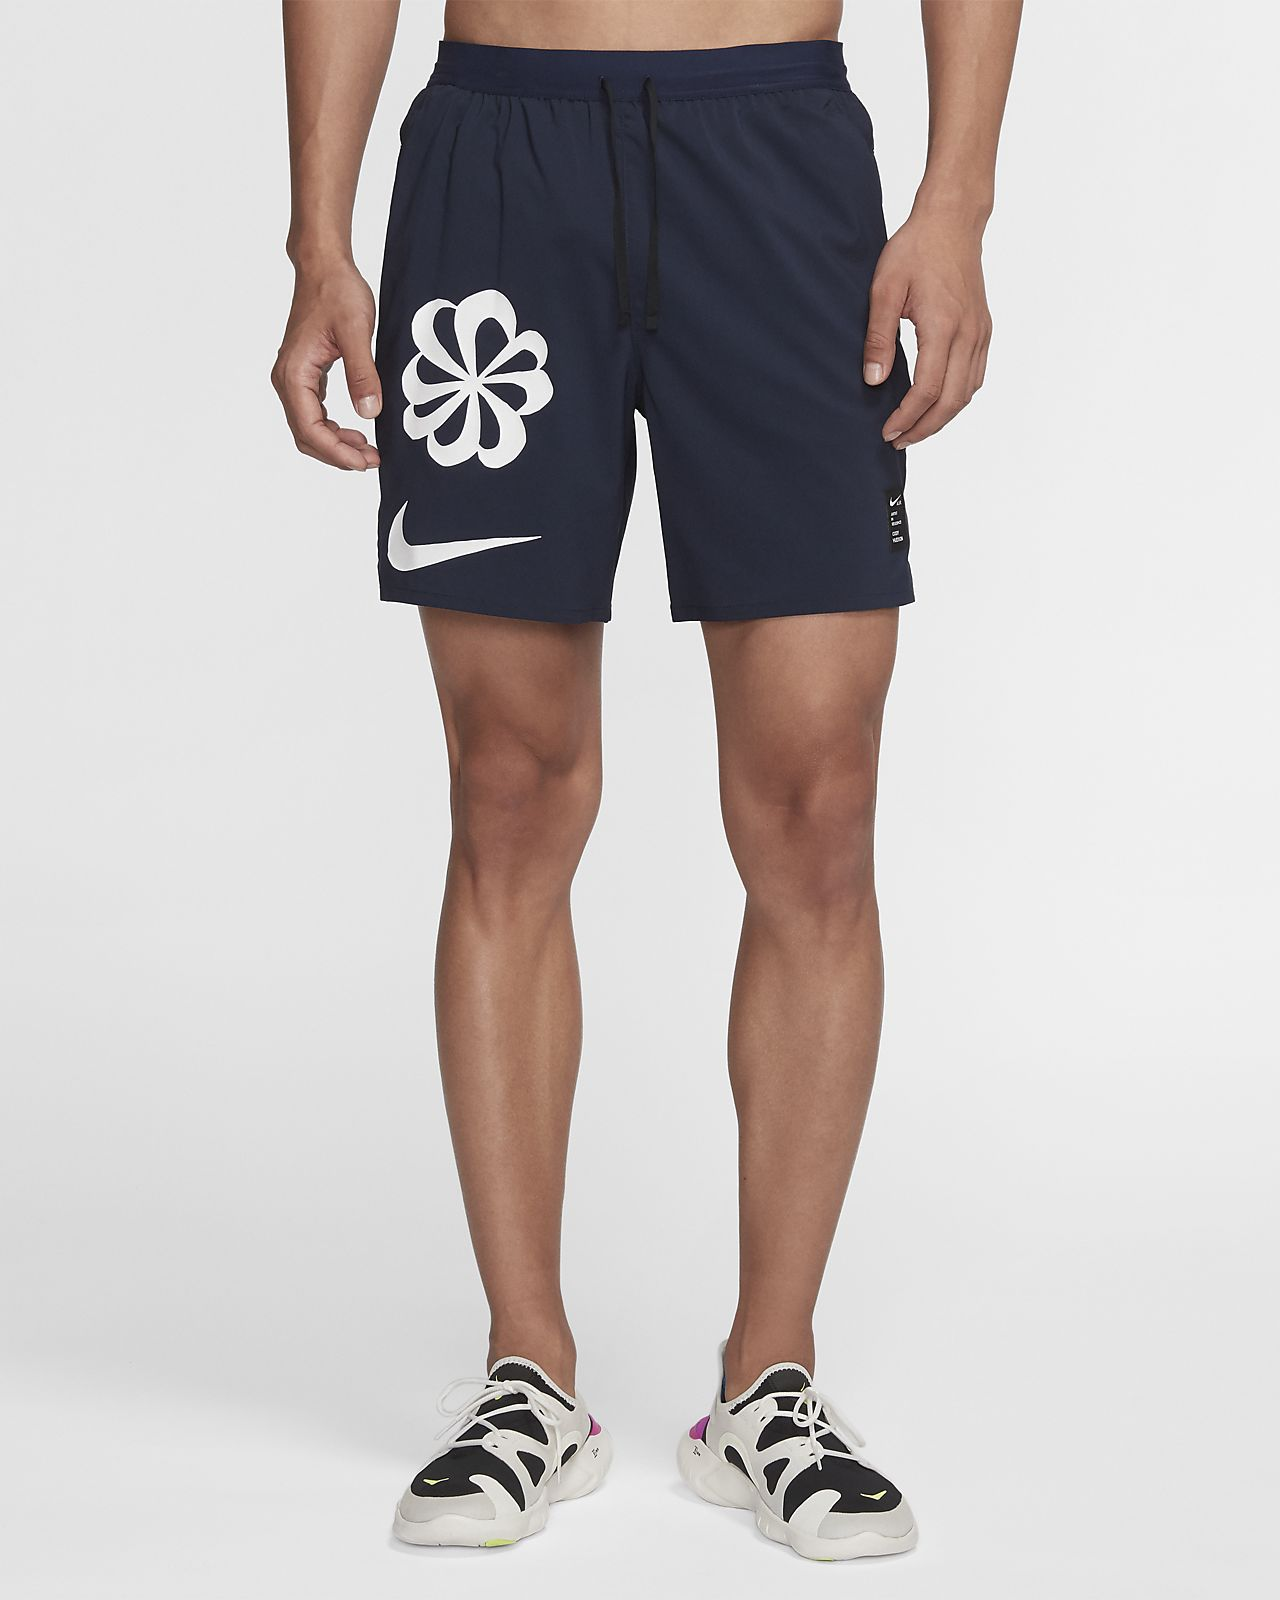 Nike Dri-FIT Flex Stride Men's Graphic Running Shorts